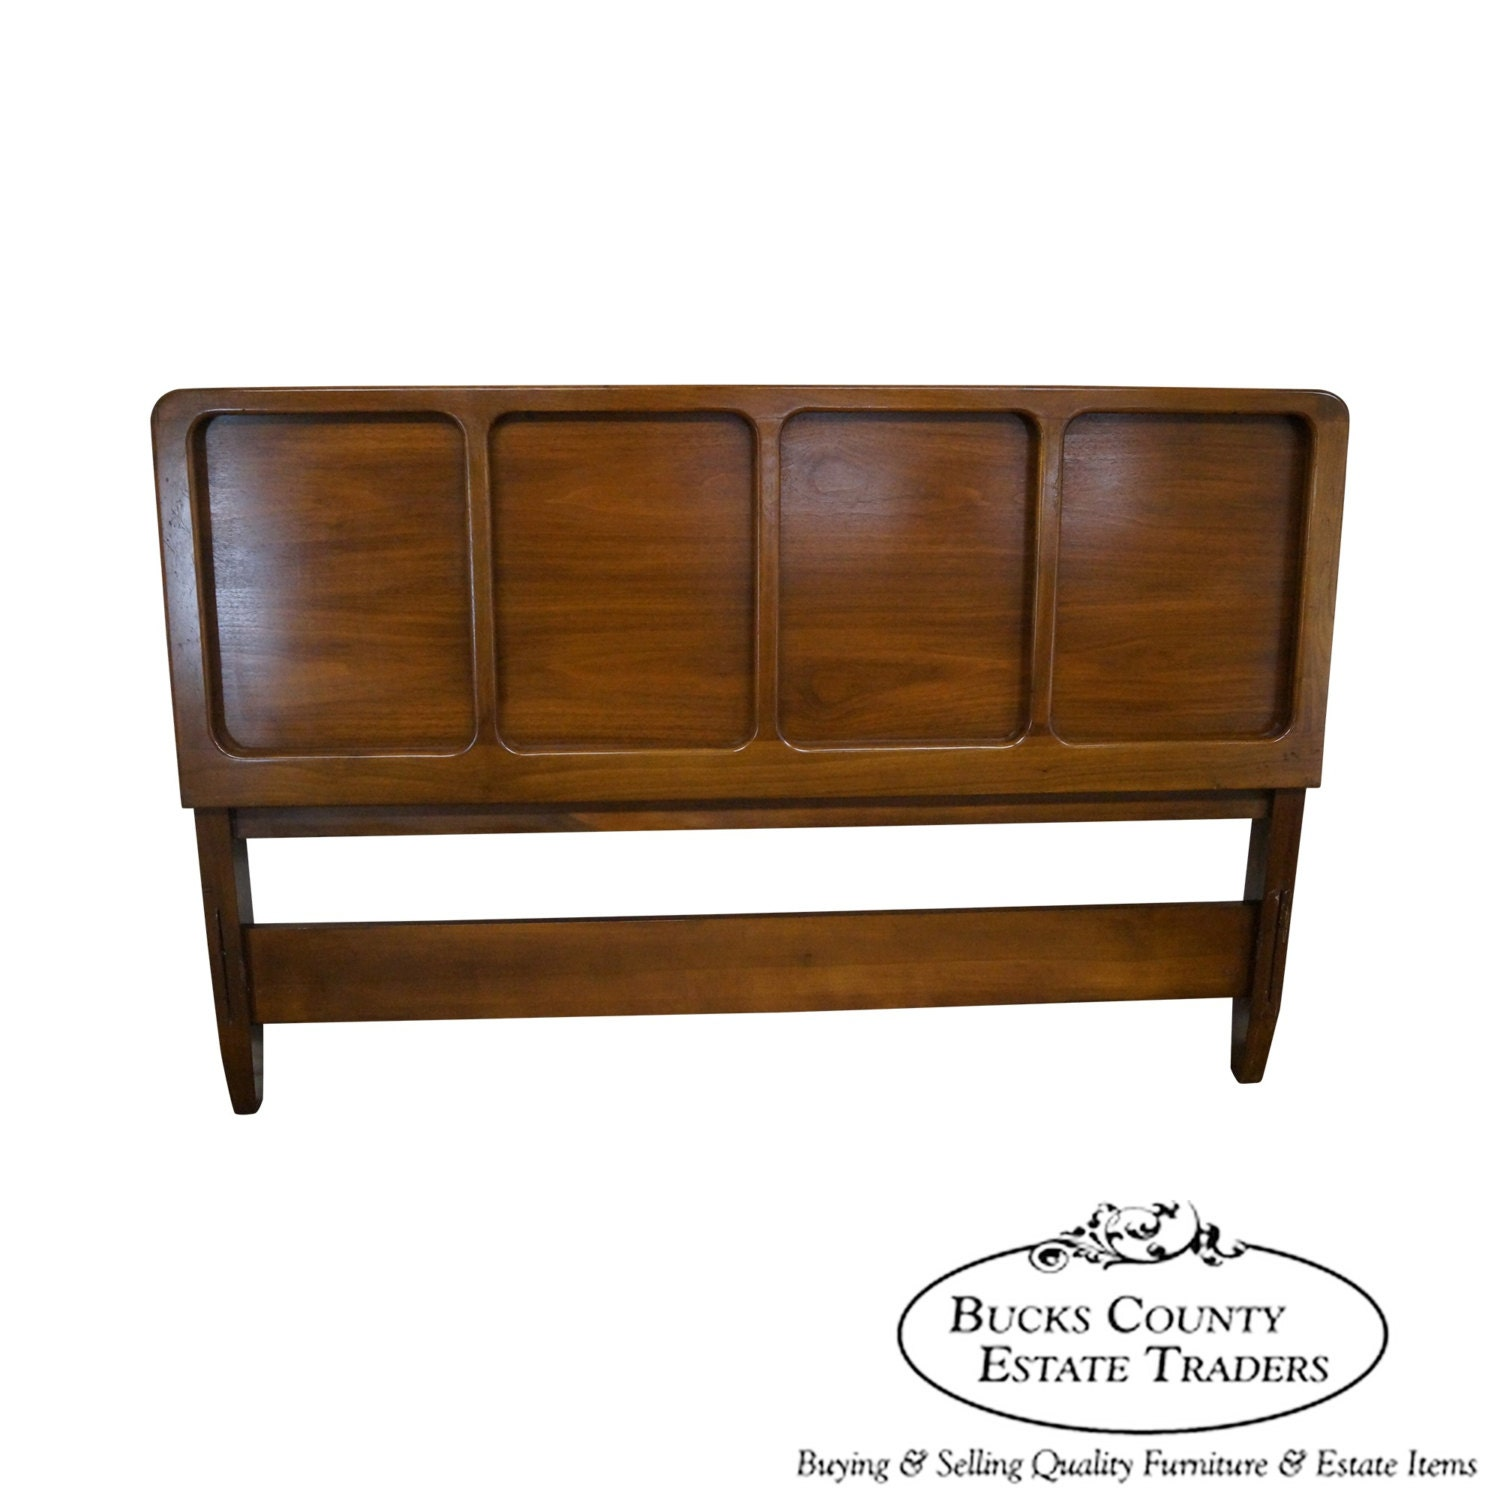 Vintage Mid Century Modern Walnut Full Size Headboard: modern bedroom with antique furniture